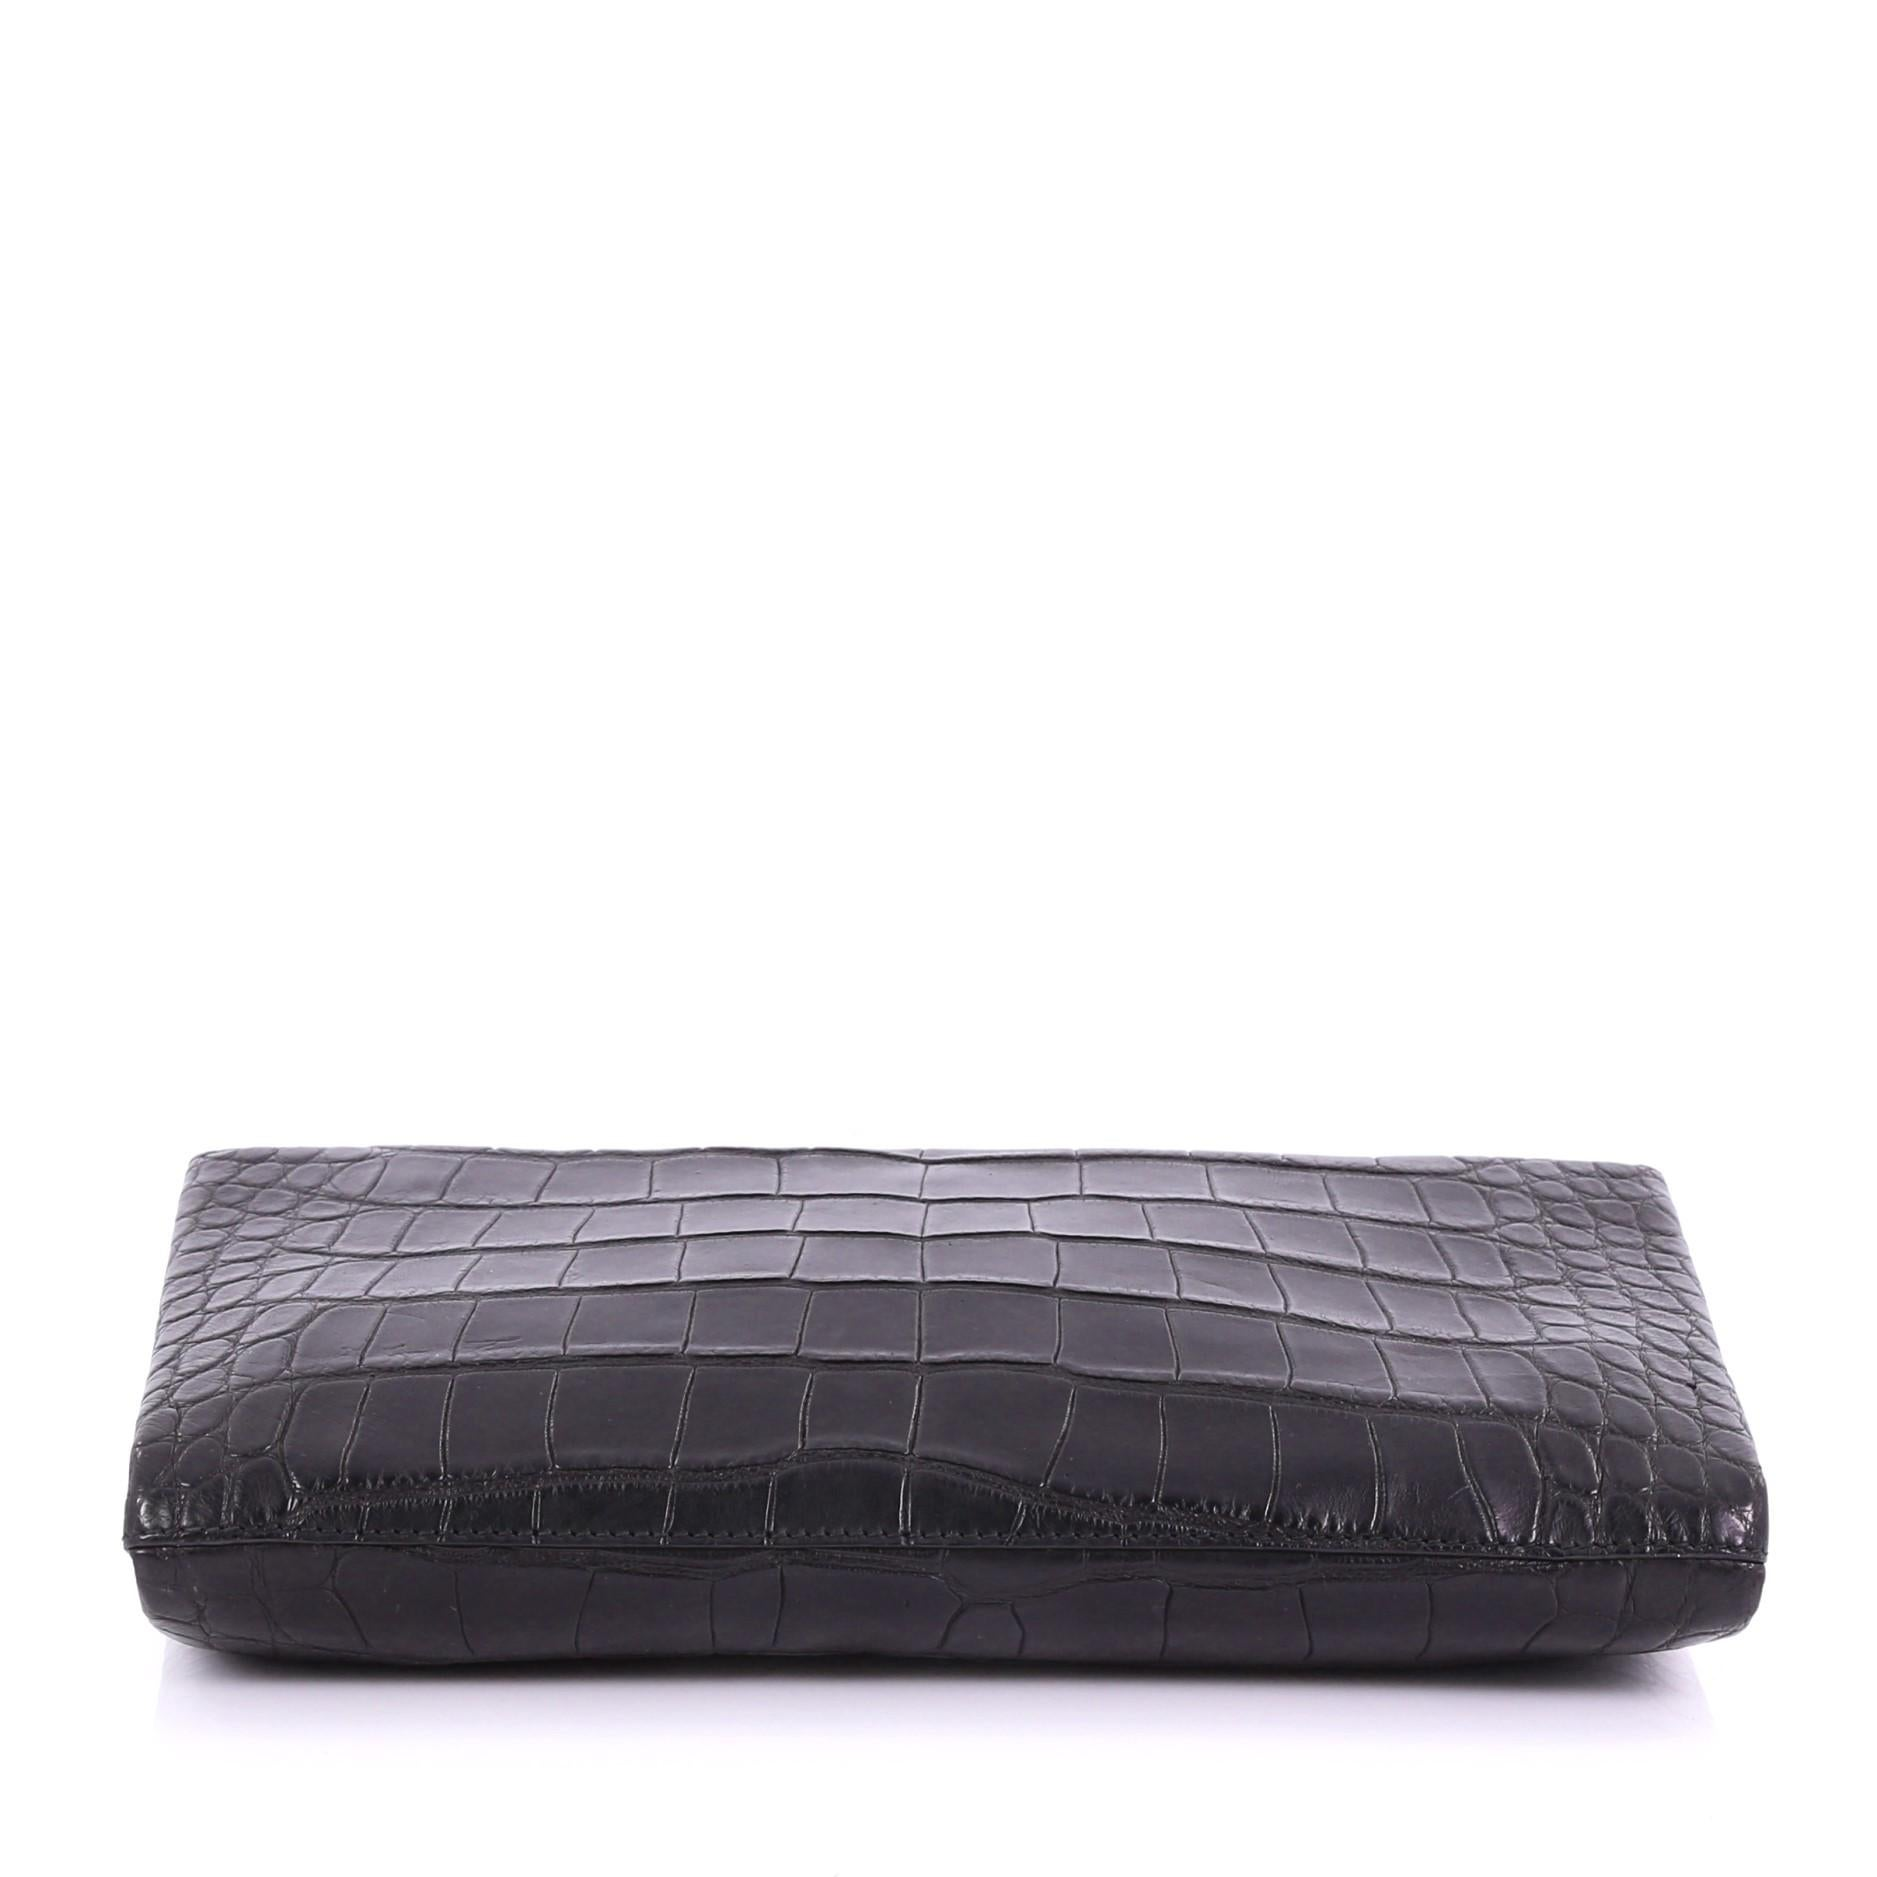 6d7333559eee Balenciaga Flap Clutch with Top Handle Embossed Crocodile and Leather  Medium at 1stdibs